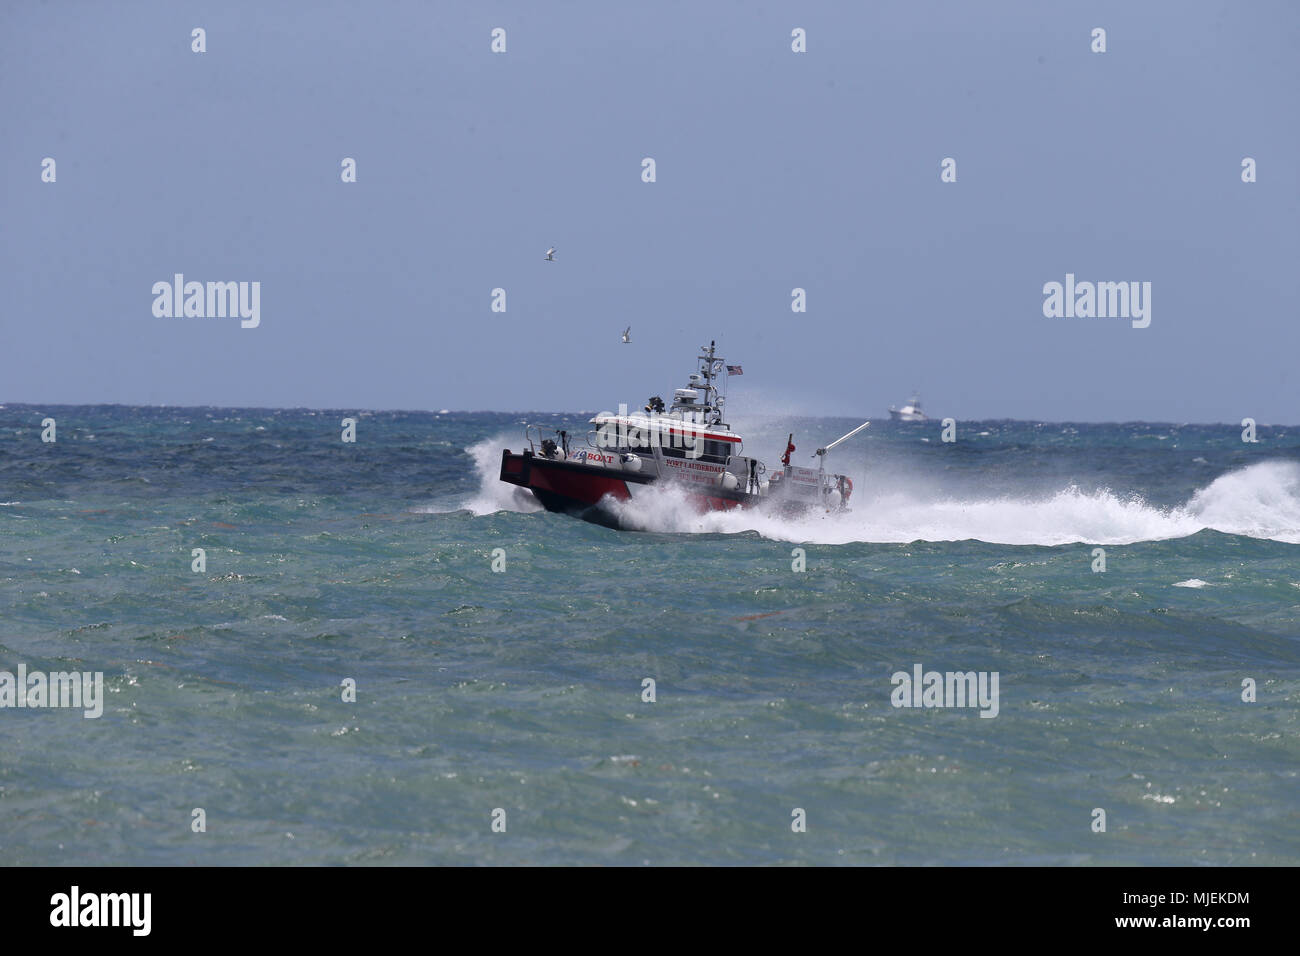 Fort Lauderdale, Florida, USA. 5th May, 2018.  Fire Boat performs at The Fort Lauderdale Air Show on May 5, 2018 in Fort Lauderdale, Florida.    People:  Fire Boat Credit: Storms Media Group/Alamy Live News Stock Photo